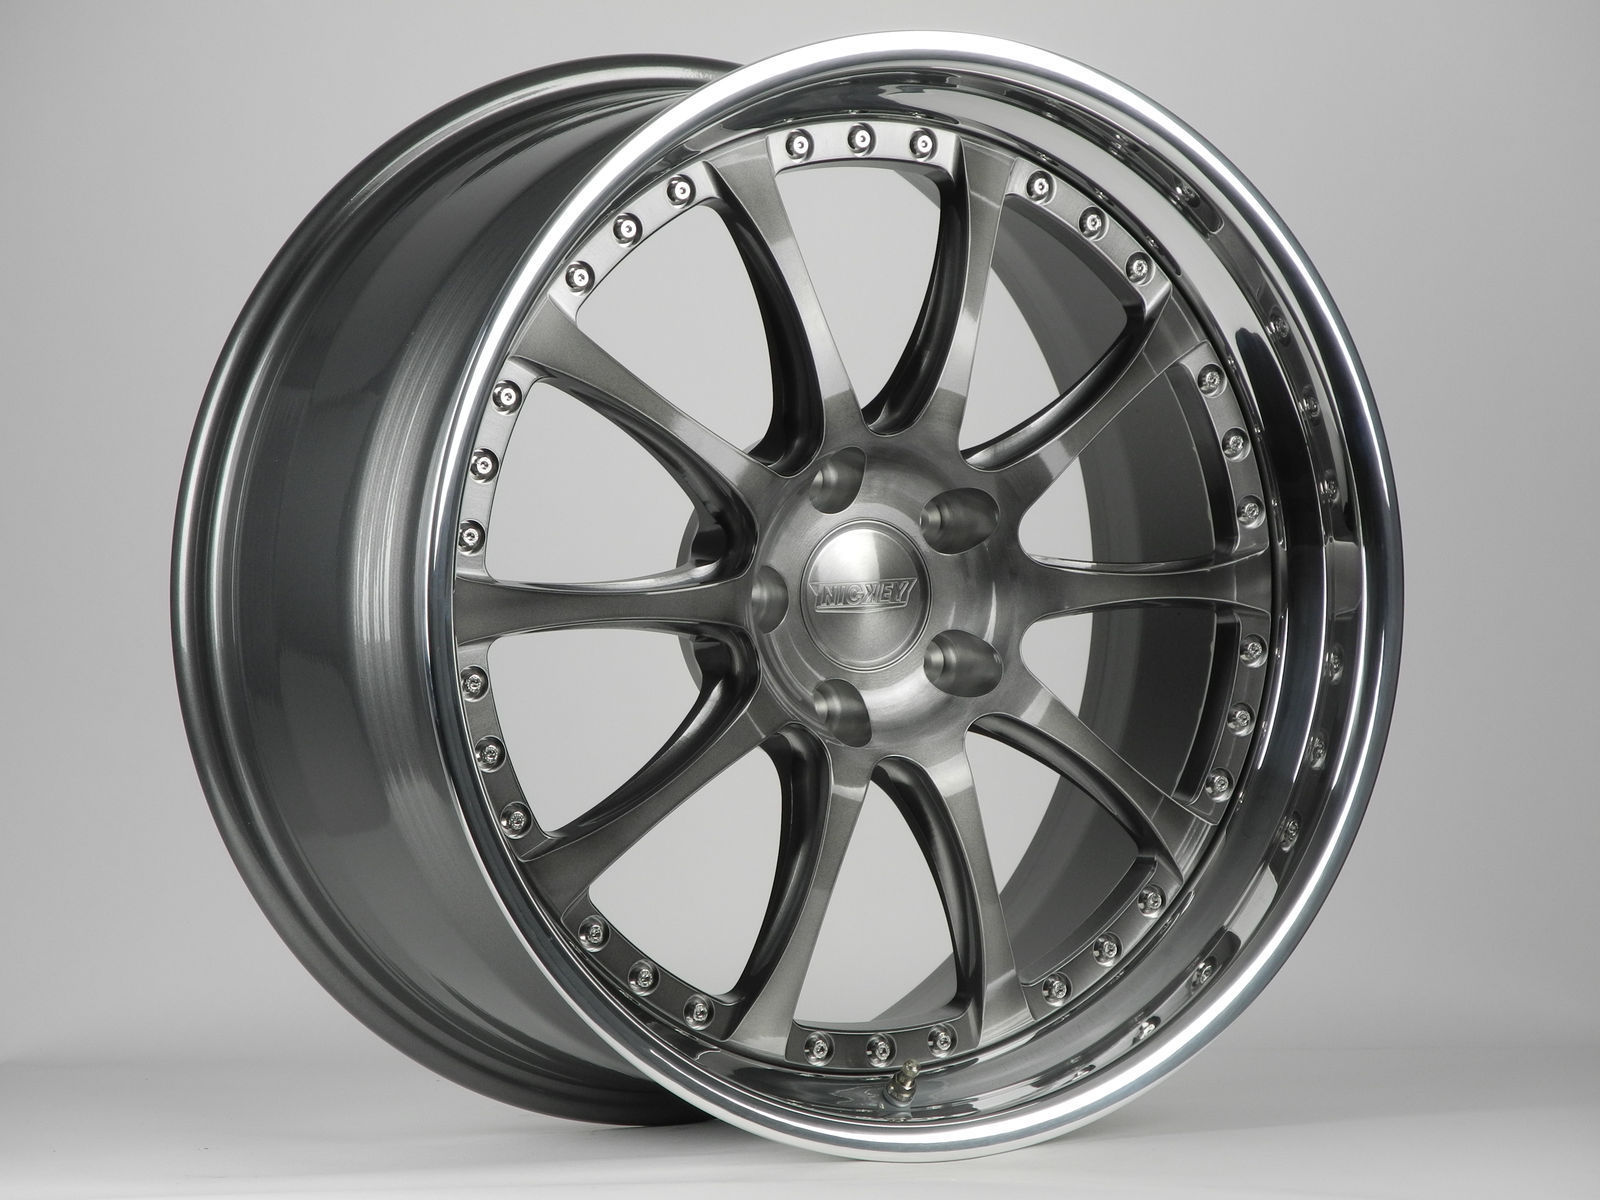 | Forgeline Performance Series GZ3 in Transparent Smoke with Exposed Hardware and Custom Center Cap